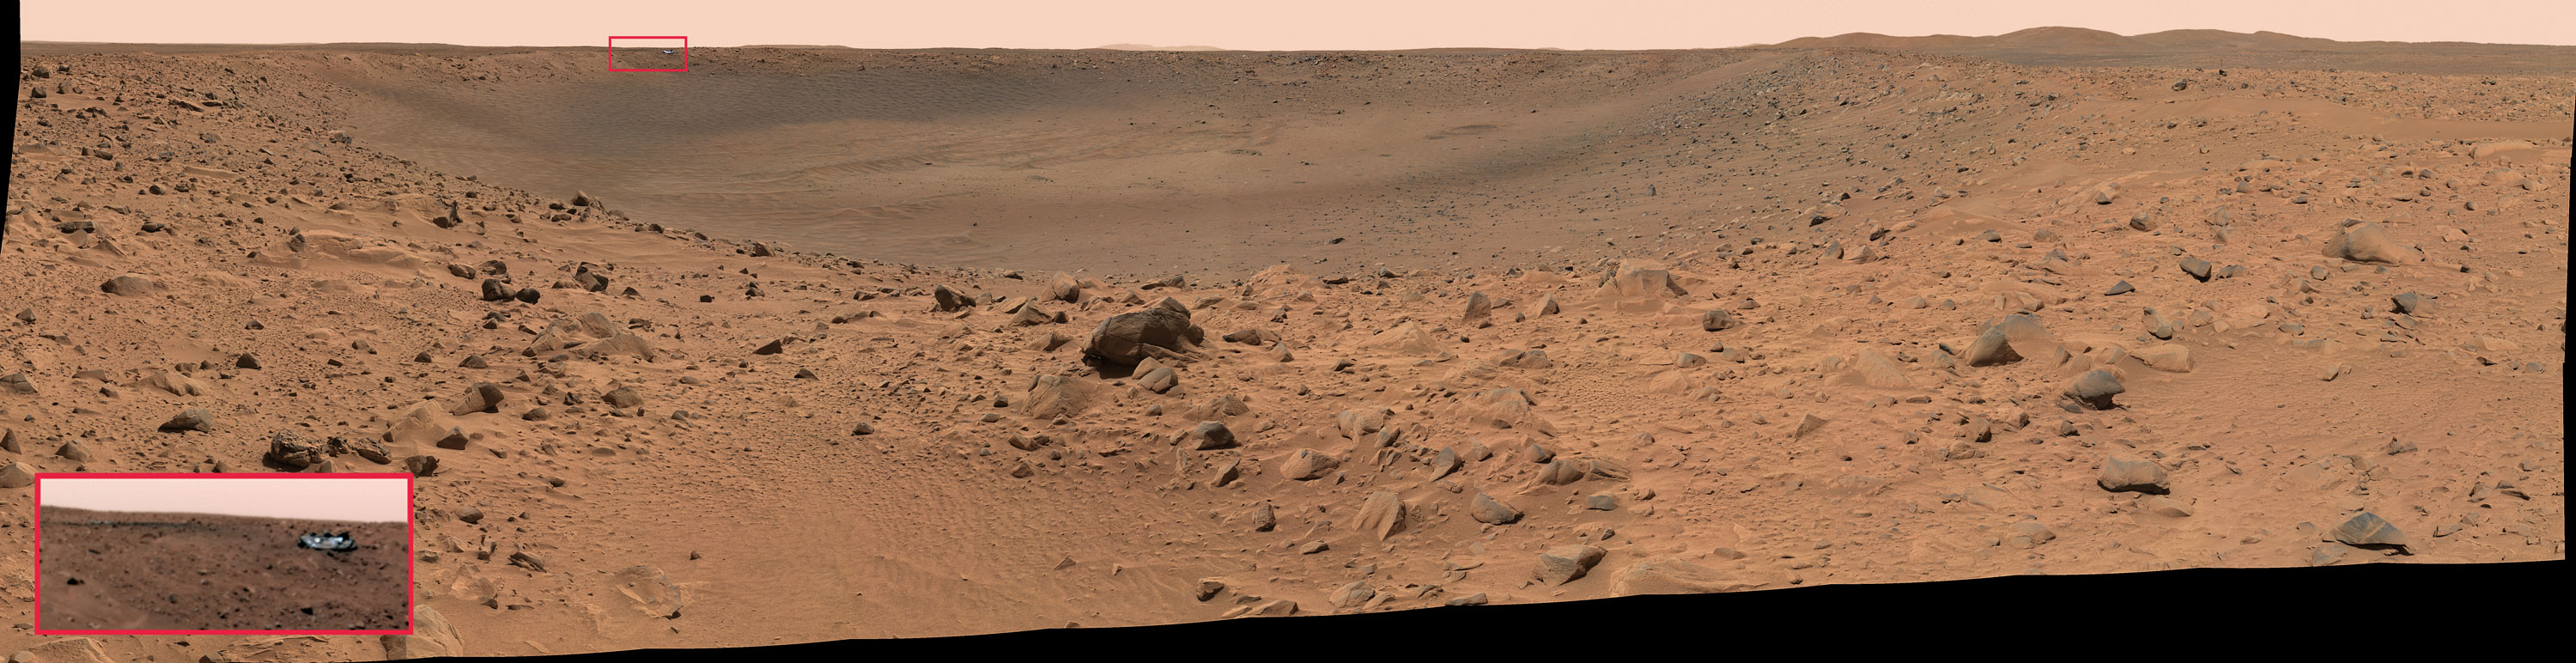 opportunity mars rover timeline - photo #36